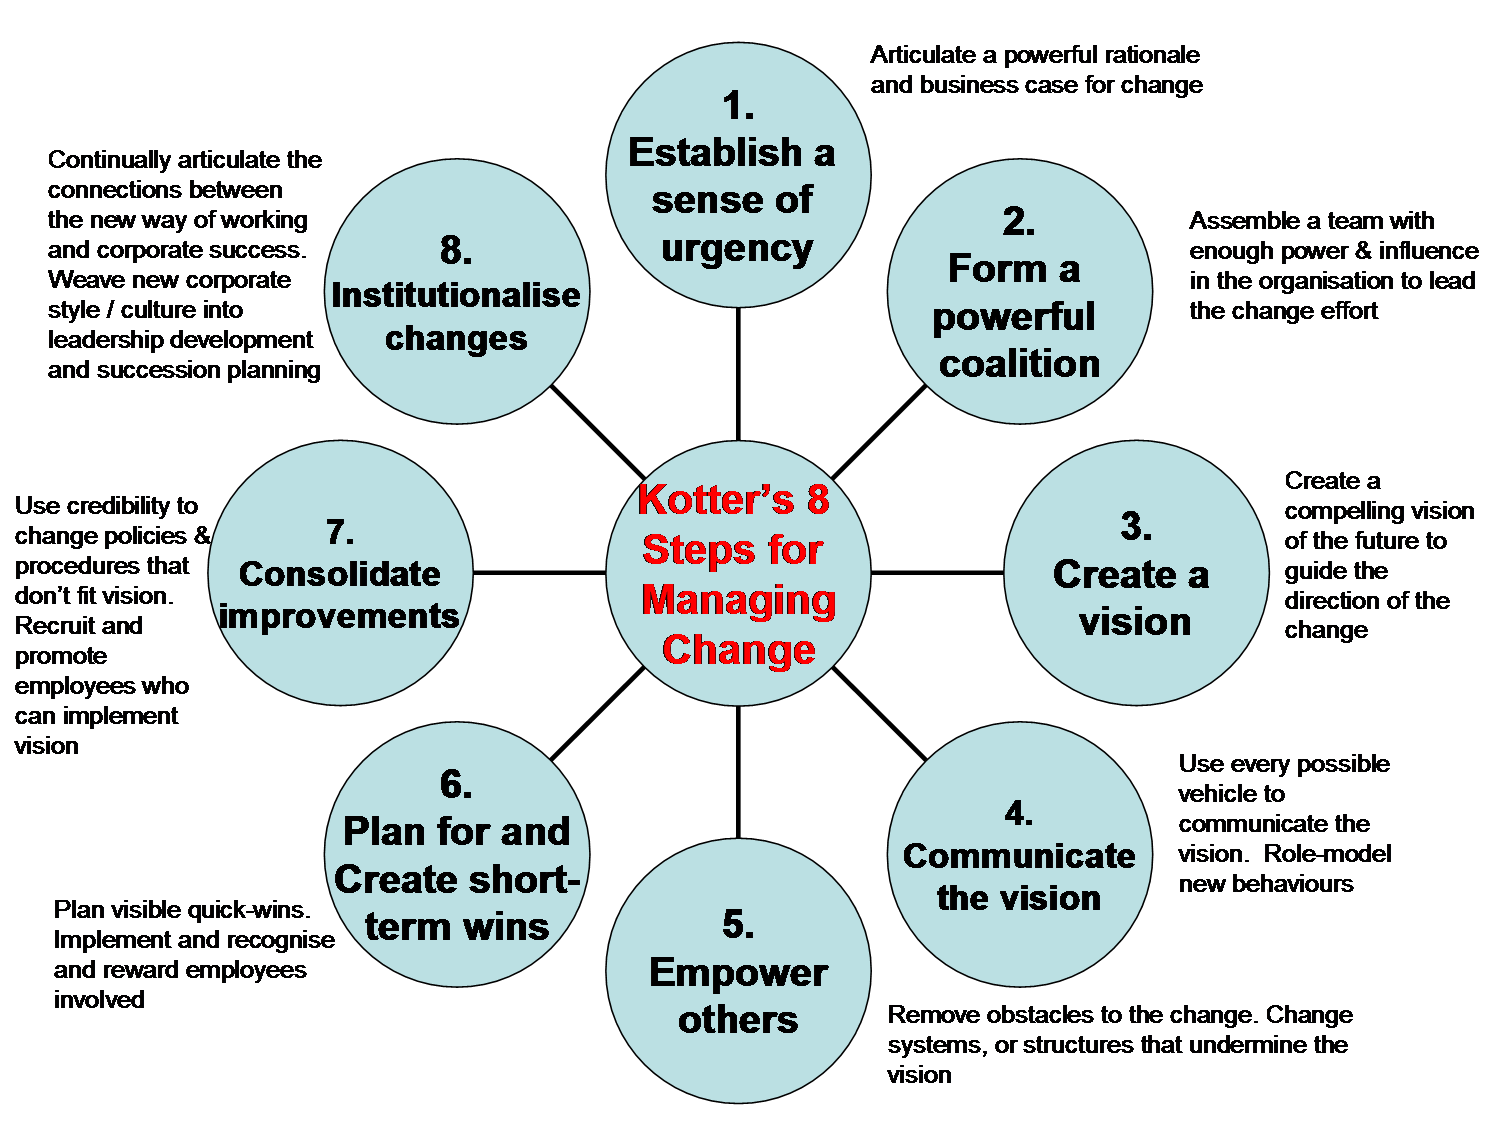 kotter s 8 step change model Start studying kotter's 8-step change model learn vocabulary, terms and more with flashcards, games and other study tools kotter's 8-step change model study play step 1: create urgency - spark the initial motivation to get things moving - identify potential threats & develop scenarios.